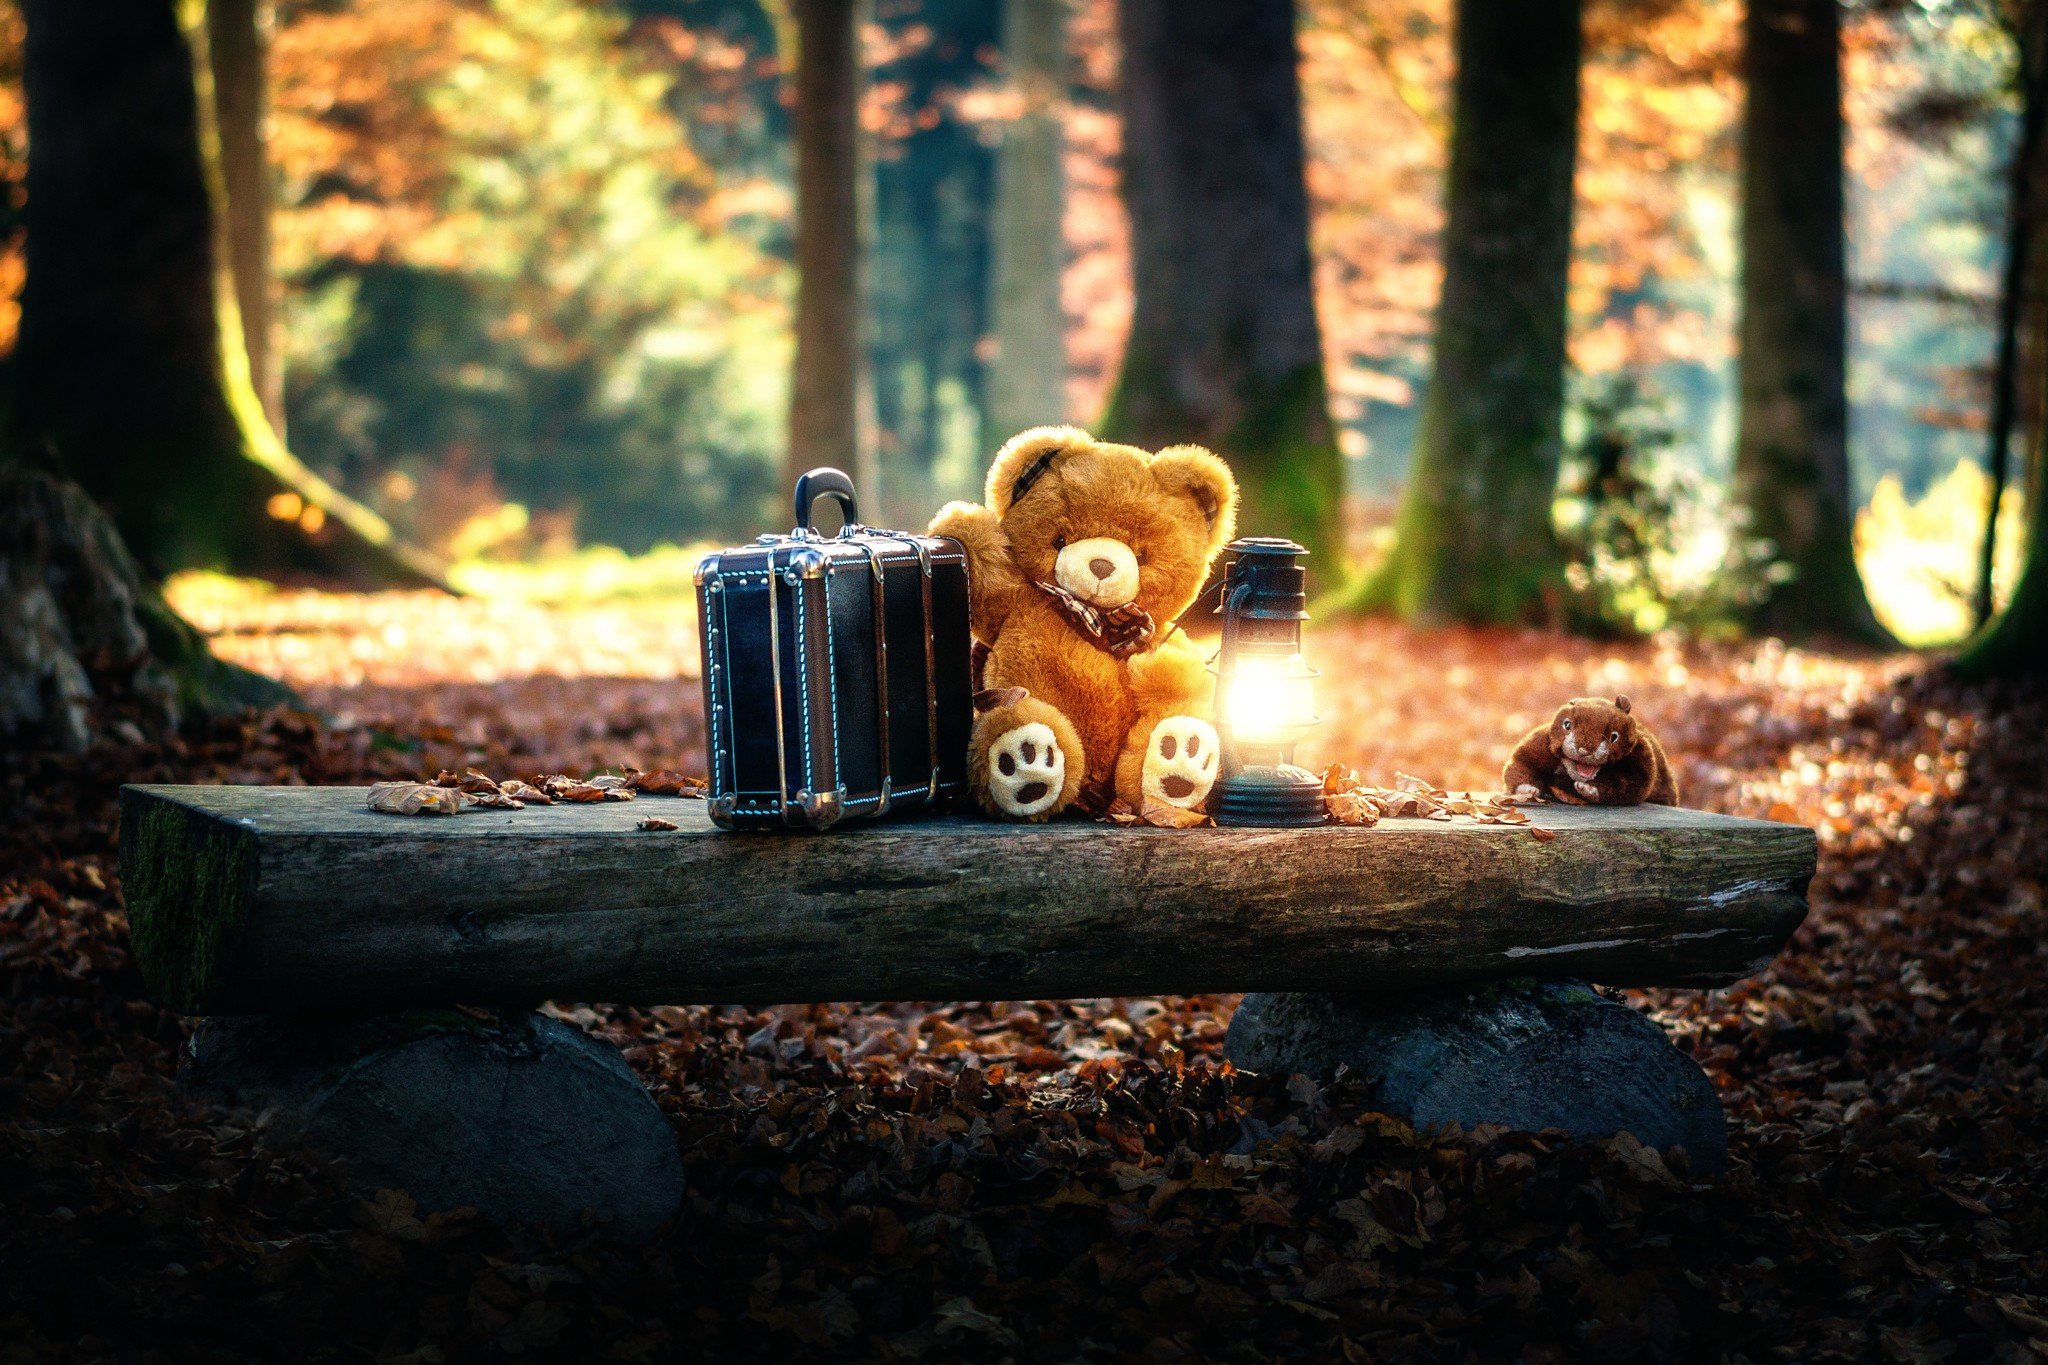 Teddy Bears Cute Alone in Forest